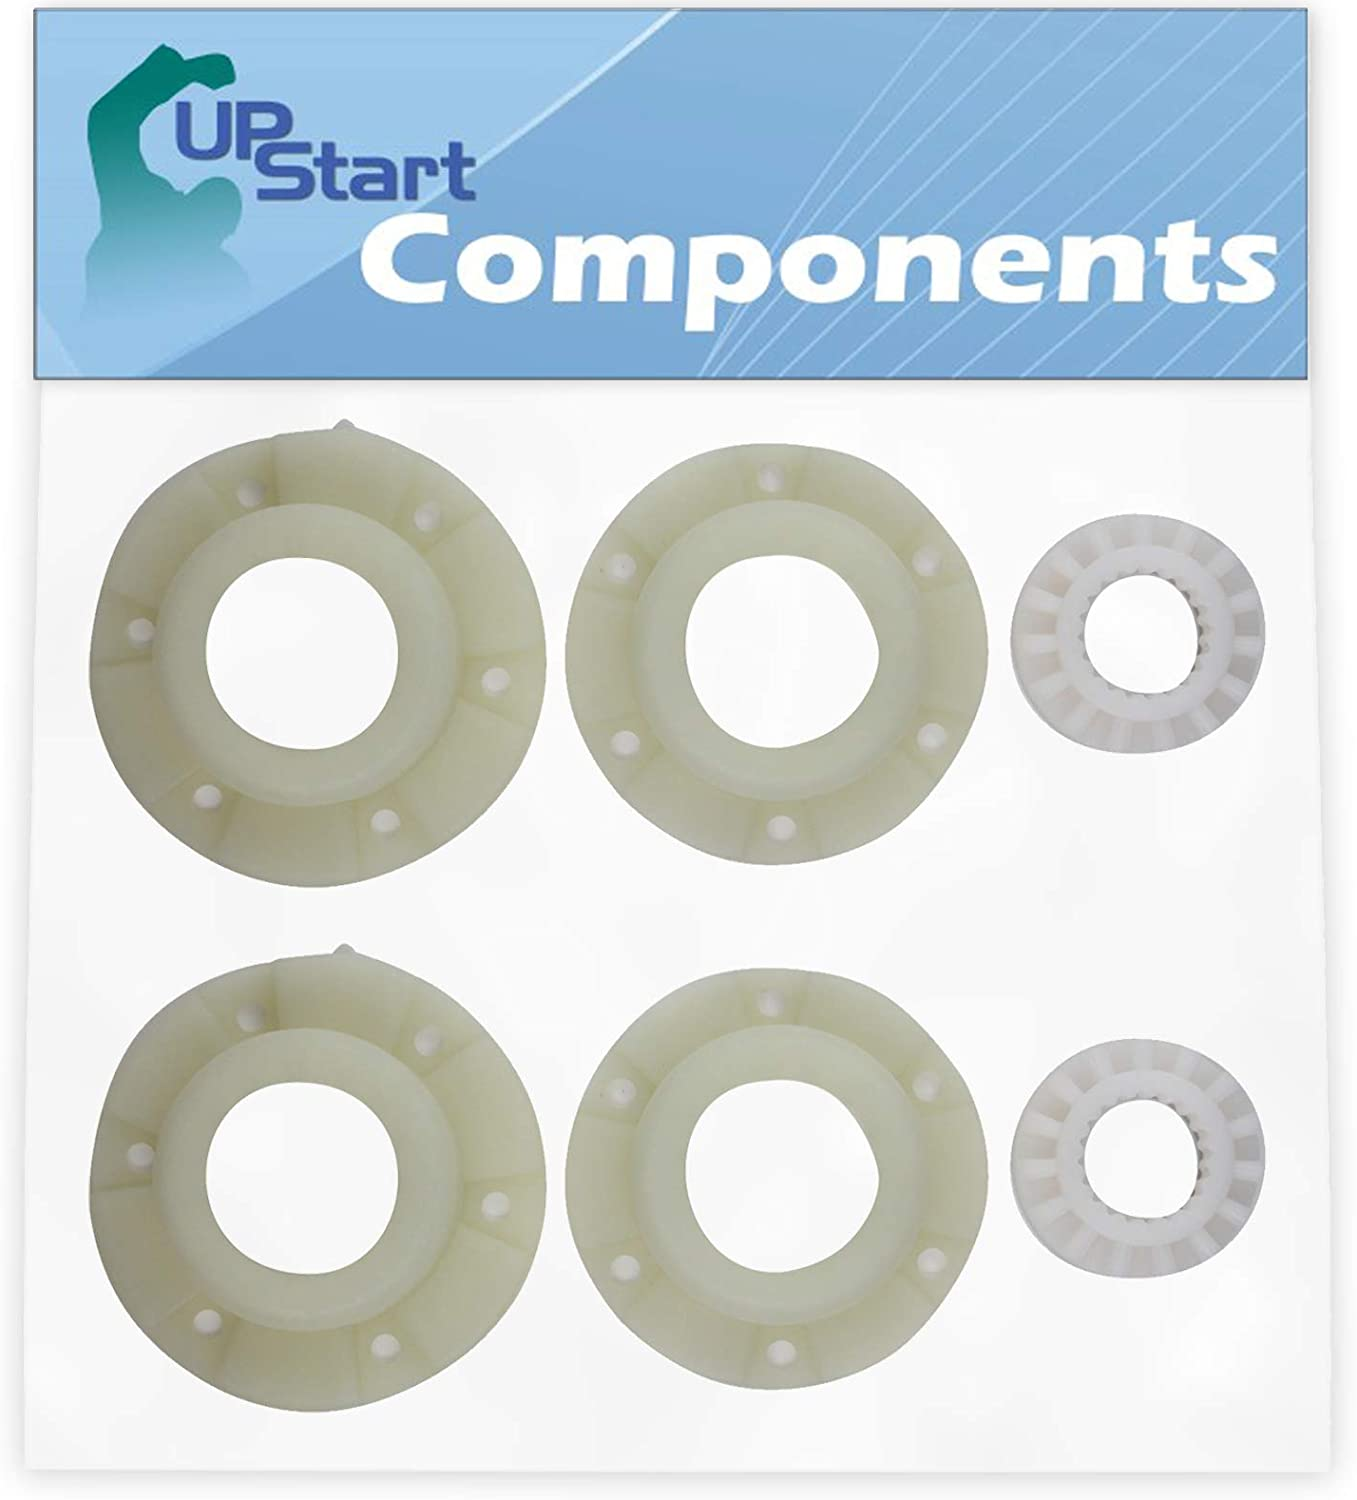 2-Pack W10820039 Hub Kit for Whirlpool, Kenmore & Maytag Washers. Compatible W10820039 Hub Kit for Part Number W10820039, AP5985205, 280145, 8545948, 8545953, PS11723155, W10118114, W10820039VP